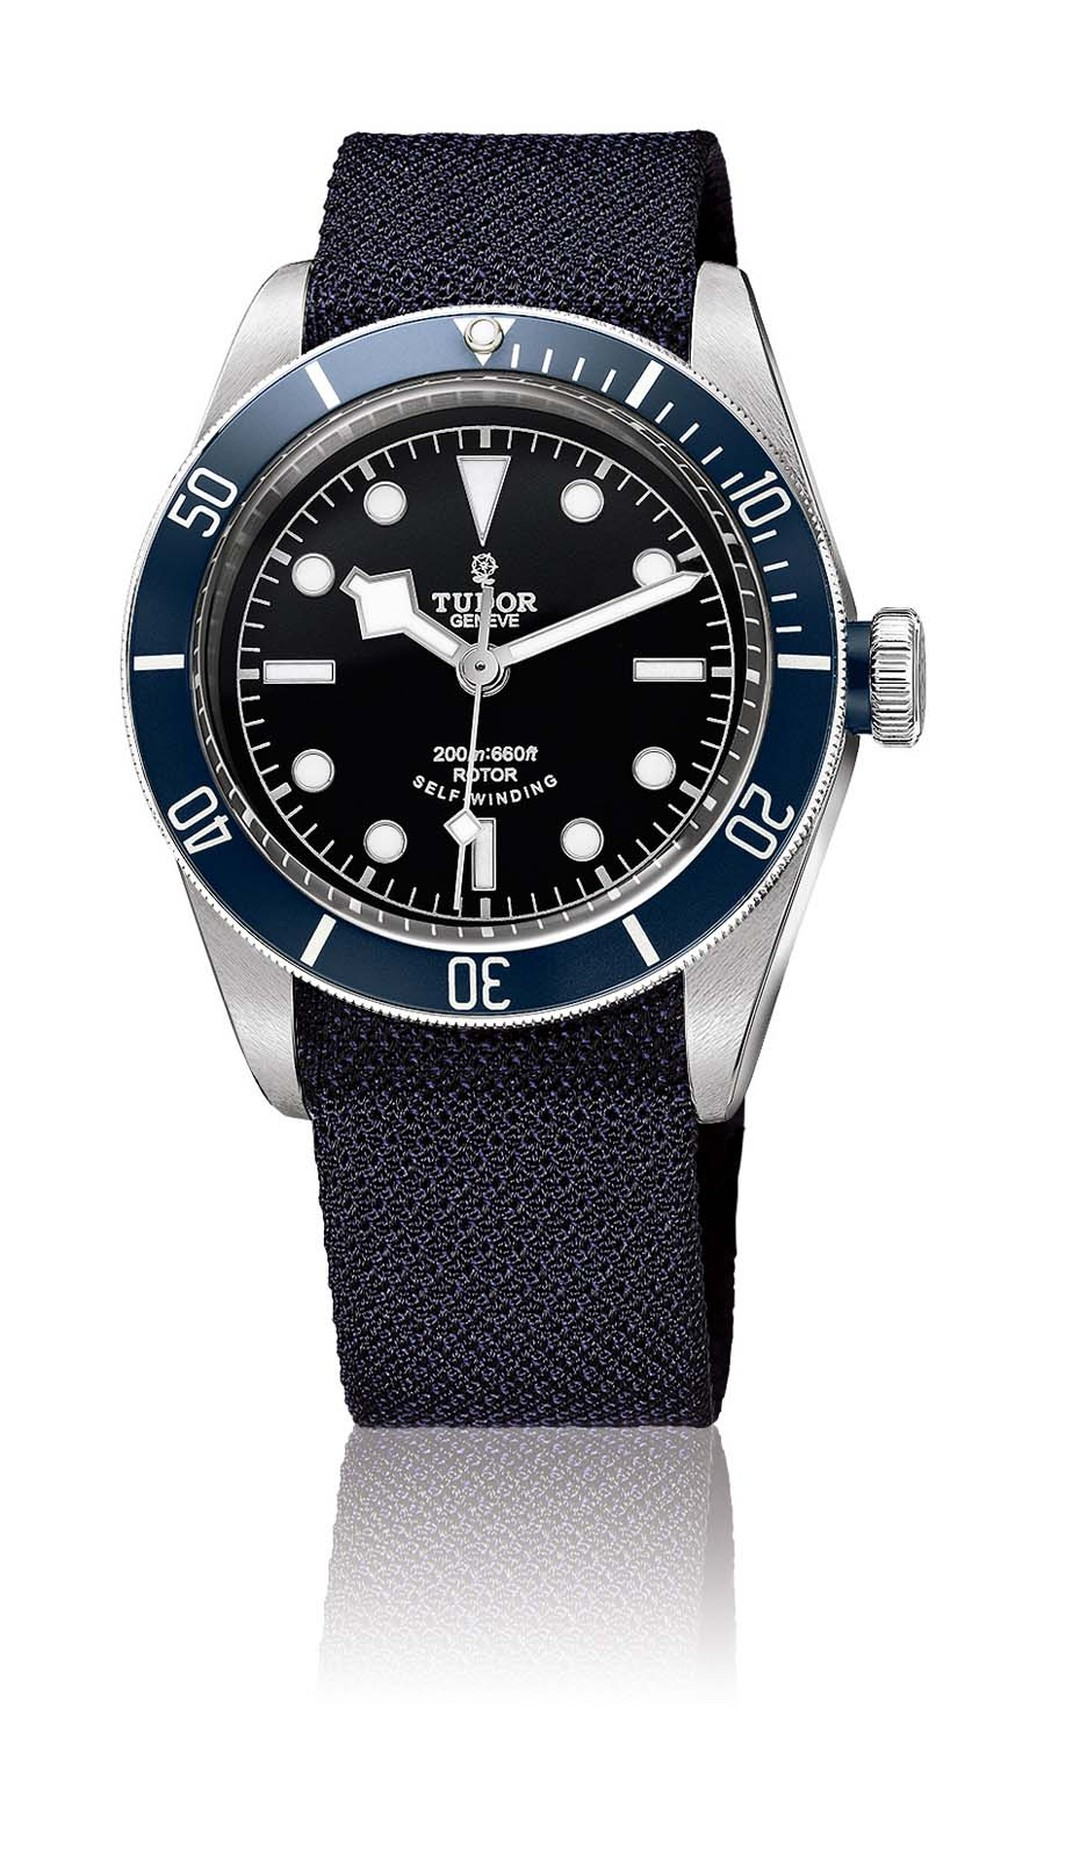 Tudor's Heritage Black Bay Marine Nationale dive watch features a rotating blue bezel and three straps, including a steel bracelet, leather strap and a black/blue textile strap.